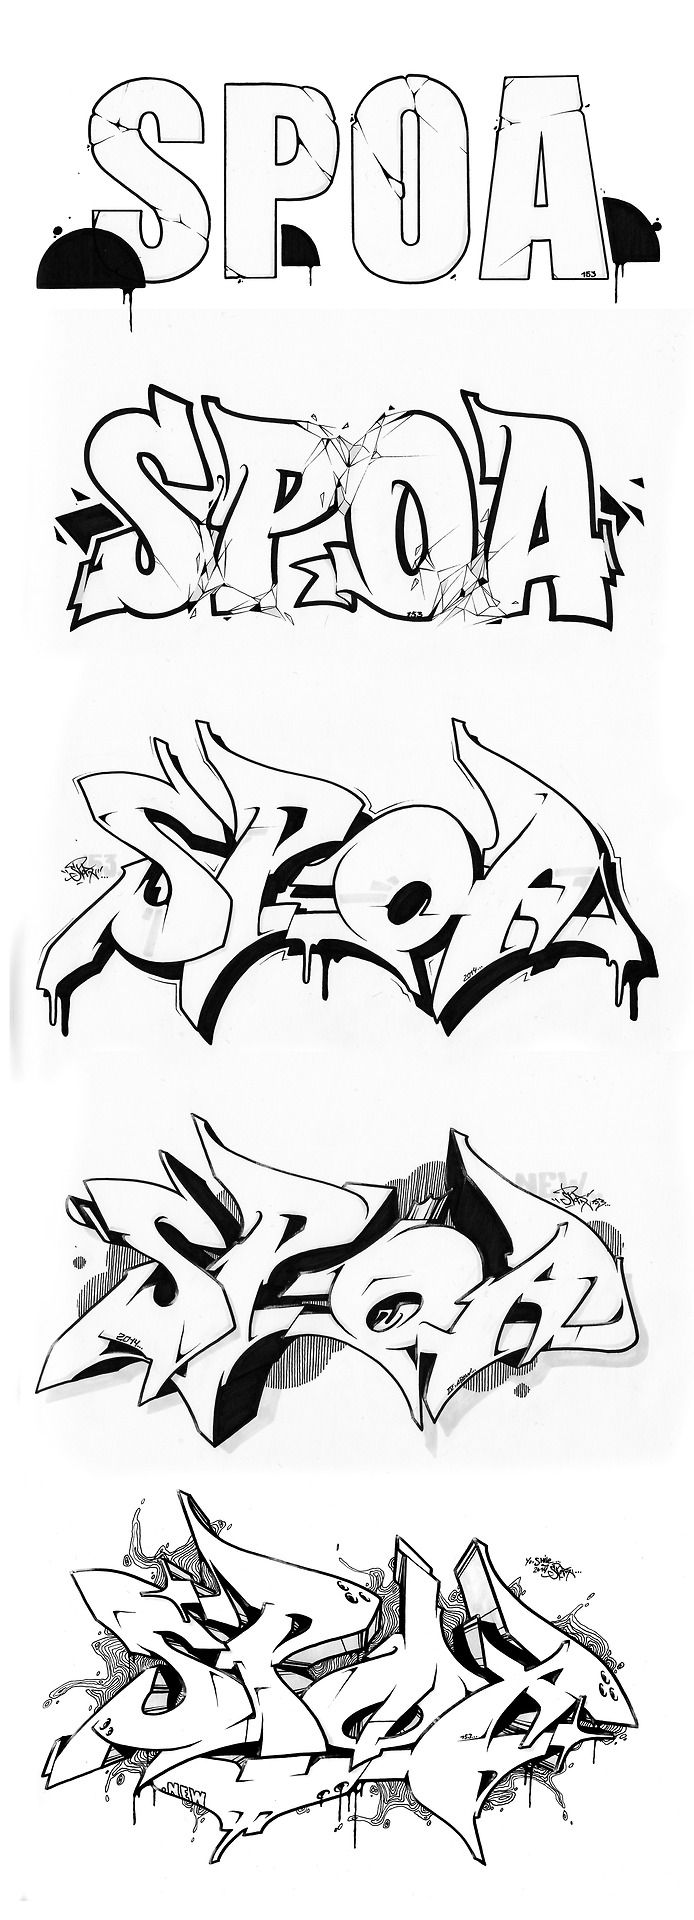 Pin By Third Bass On Wildstyle Pinterest Graffiti Street Art And Graffiti Art